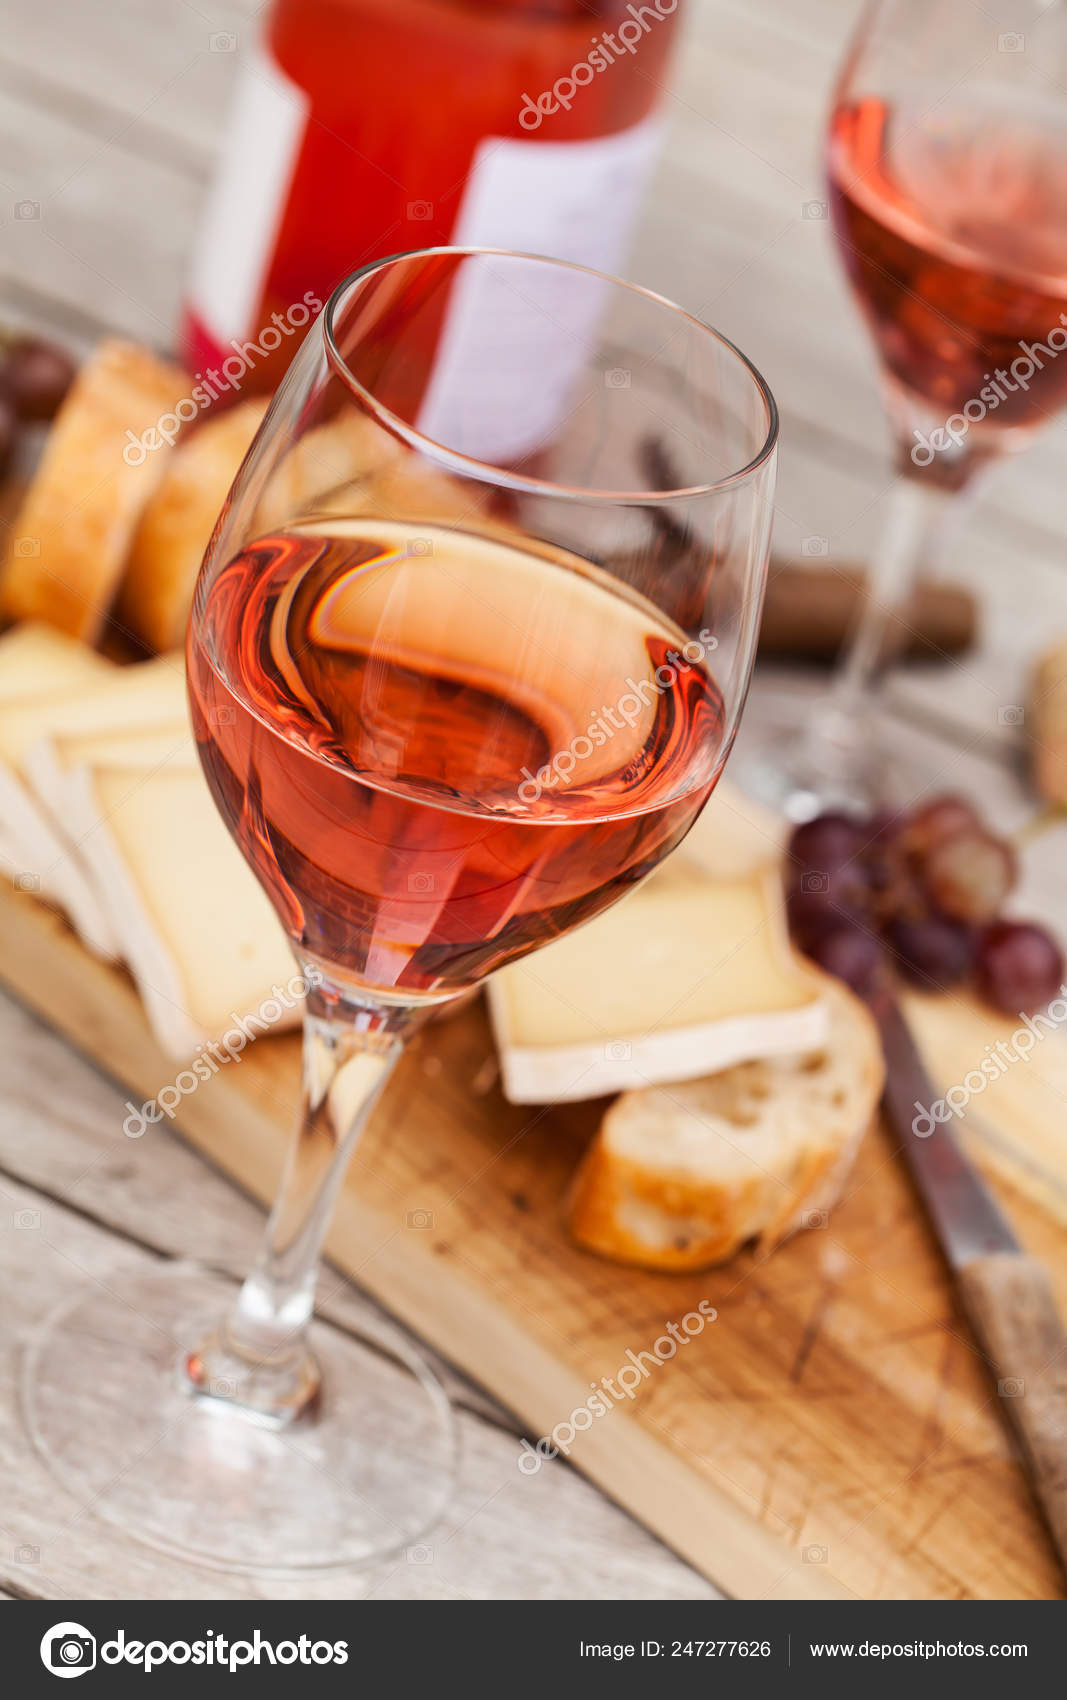 Two Glasses Rose Wine Board Fruits Bread Cheese Wooden Table Stock